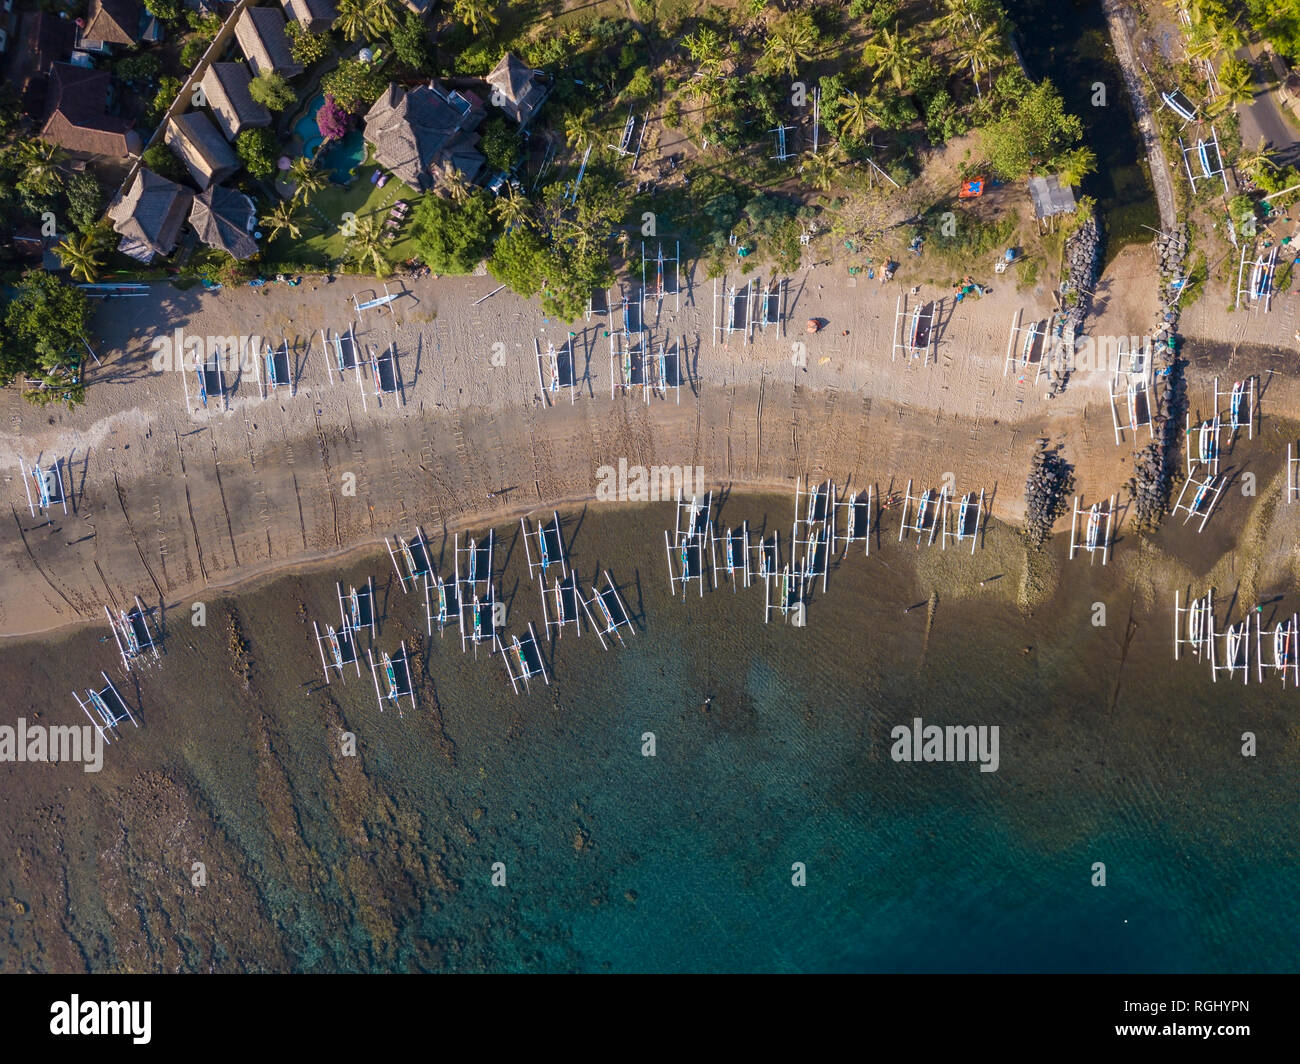 Indonesia, Bali, Amed, Aerial view of Lipah beach - Stock Image